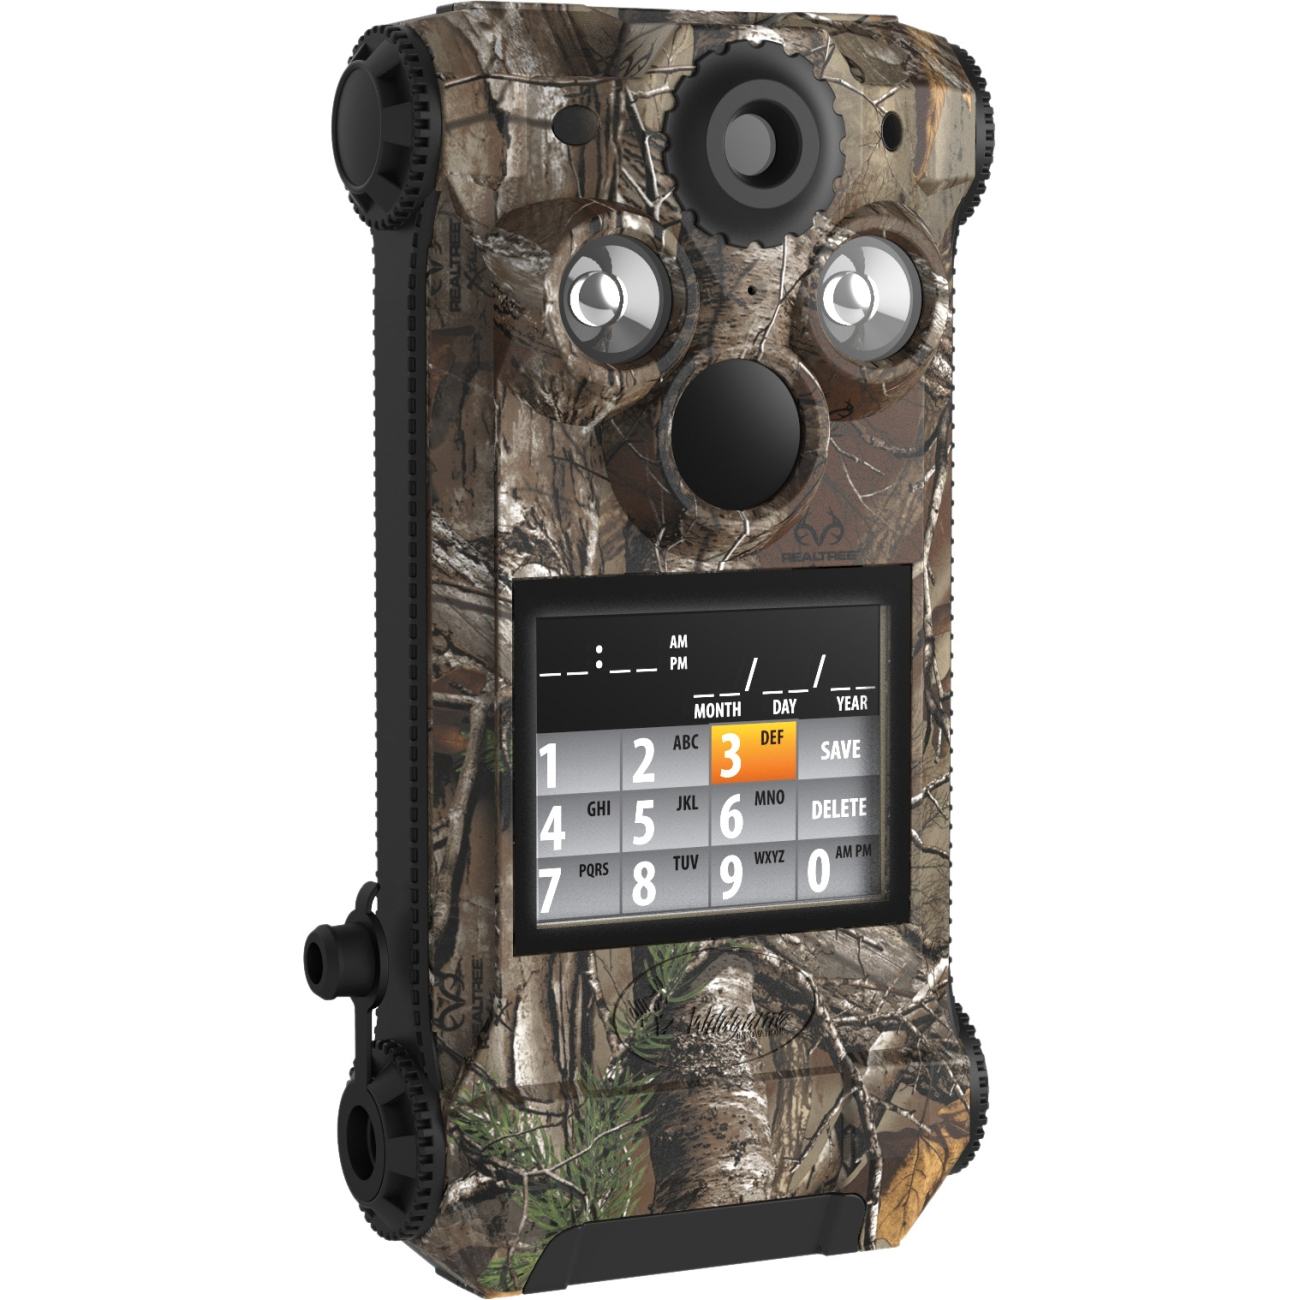 Wildgame Innovations Crush 12 Touch Game Camera, 12 Megapixel by Wildgame Innovations